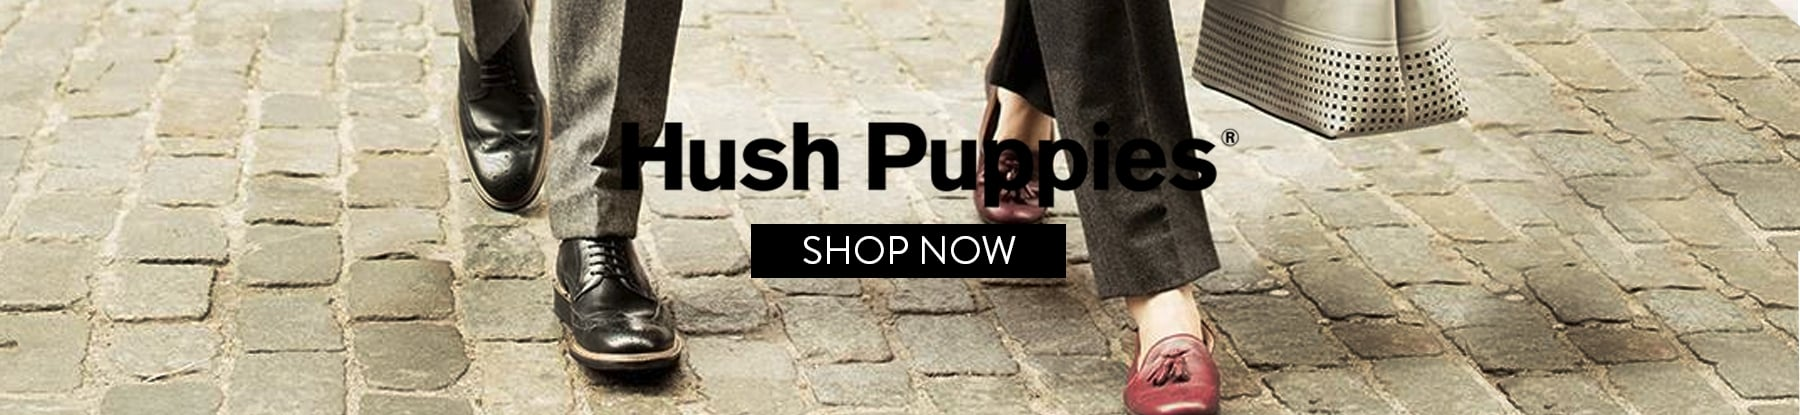 Hush Puppies Shop Now